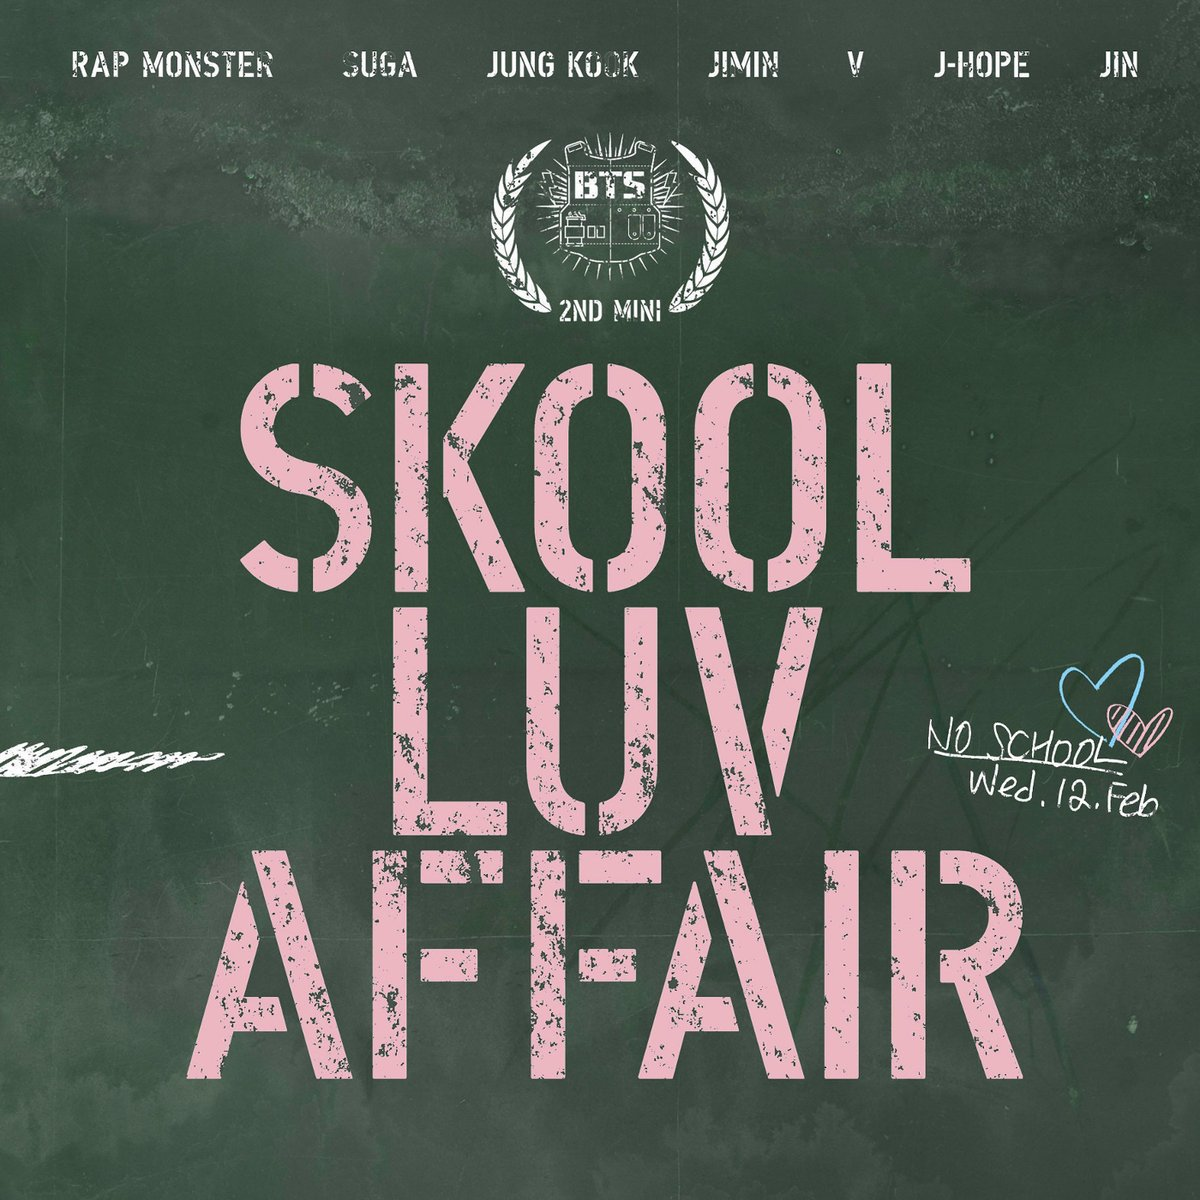 Skool Luv Affair - 1. Intro: Skool Luv Affair2. 상남자 (Boy In Luv)3. Skit: Soulmate4. 어디에서 왔는지 (Where Did You Come From?)5. 하루만 (Just One Day)6. Tomorrow7. BTS Cypher Pt. 2: Triptych8. 등골브레이커 (Spine Breaker)9. Jump10. Outro: ProposeSpecial Edition:11. Miss Right12. 좋아요 (I Like It: Slow Jam Remix)